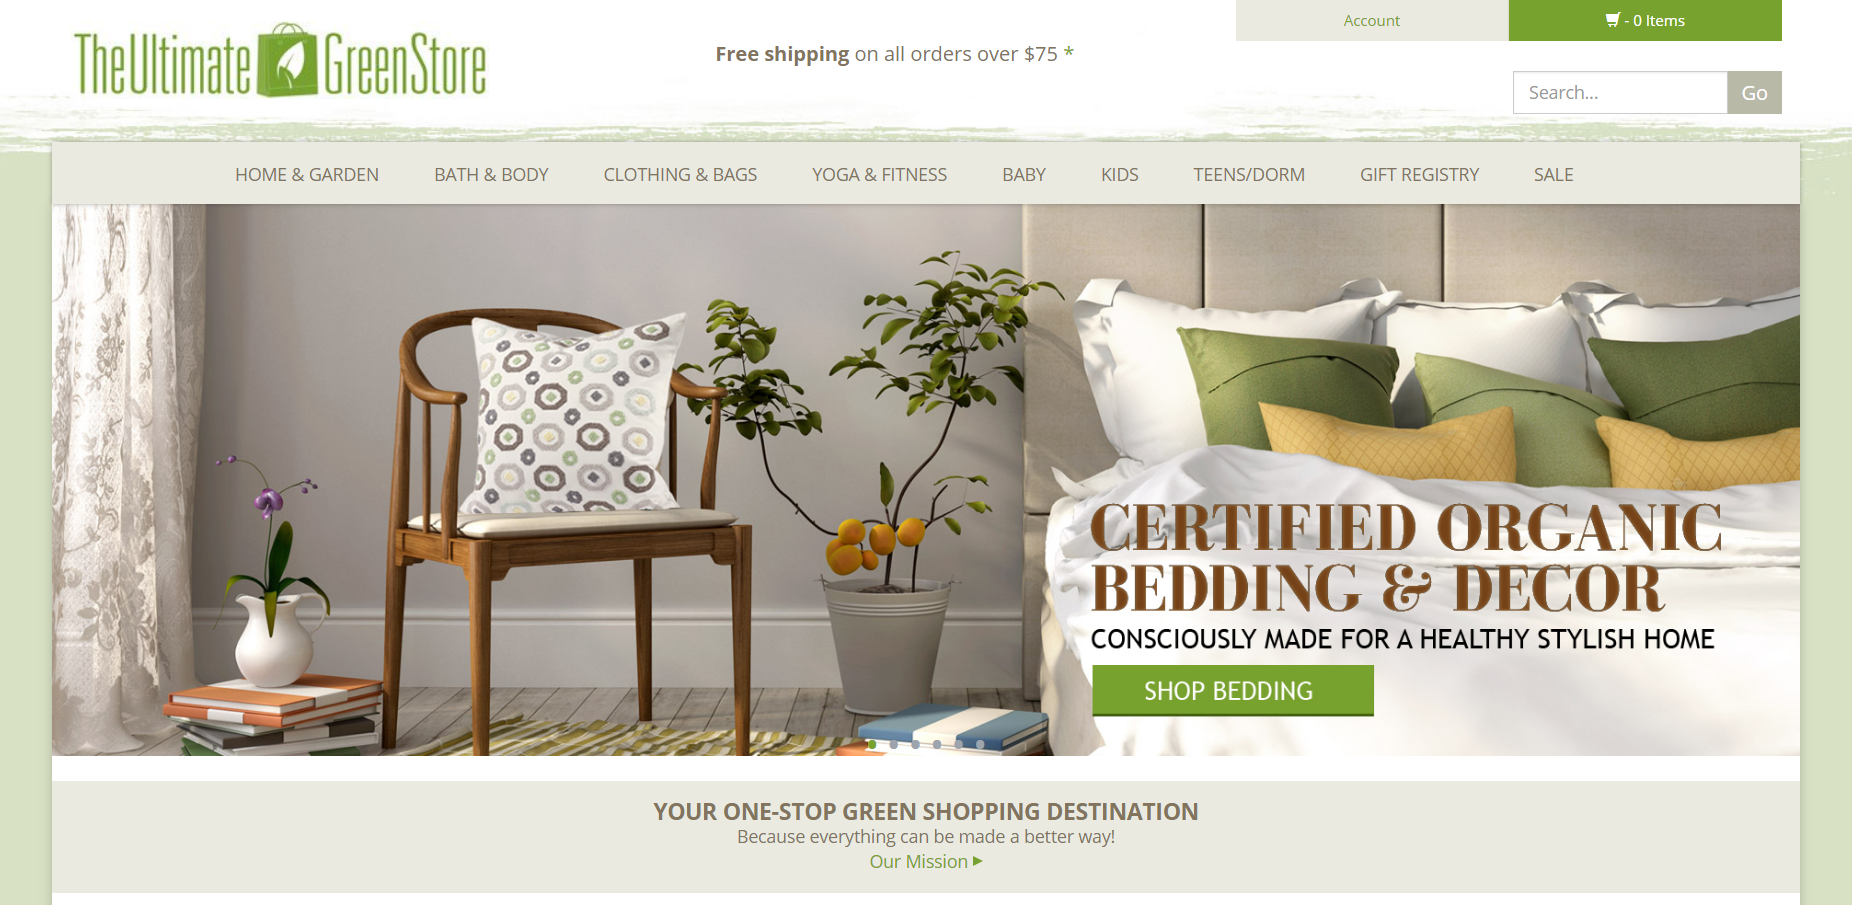 The Ultimate Green Store Coupons